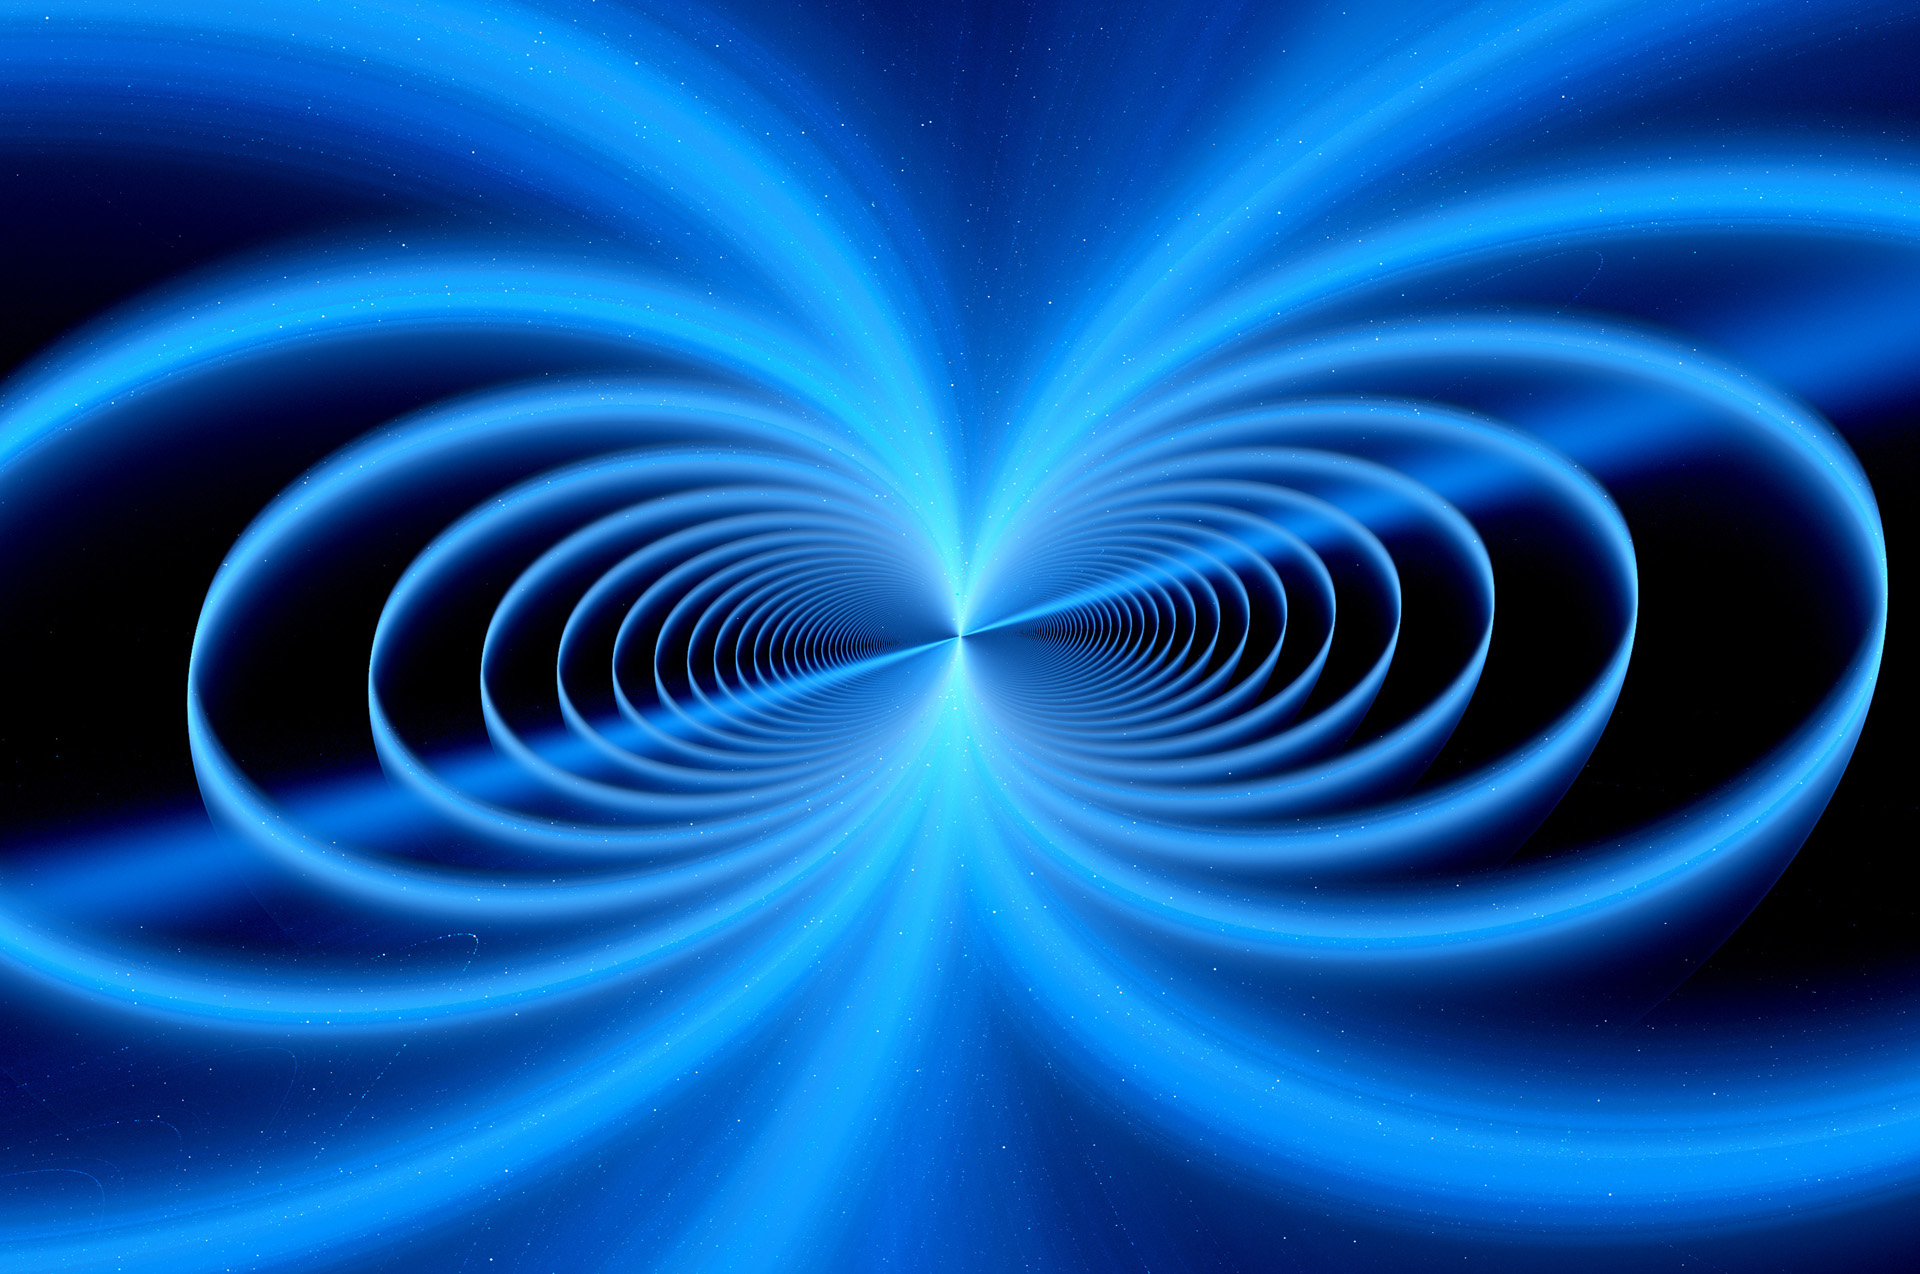 Blue glowing magnetic field fractal